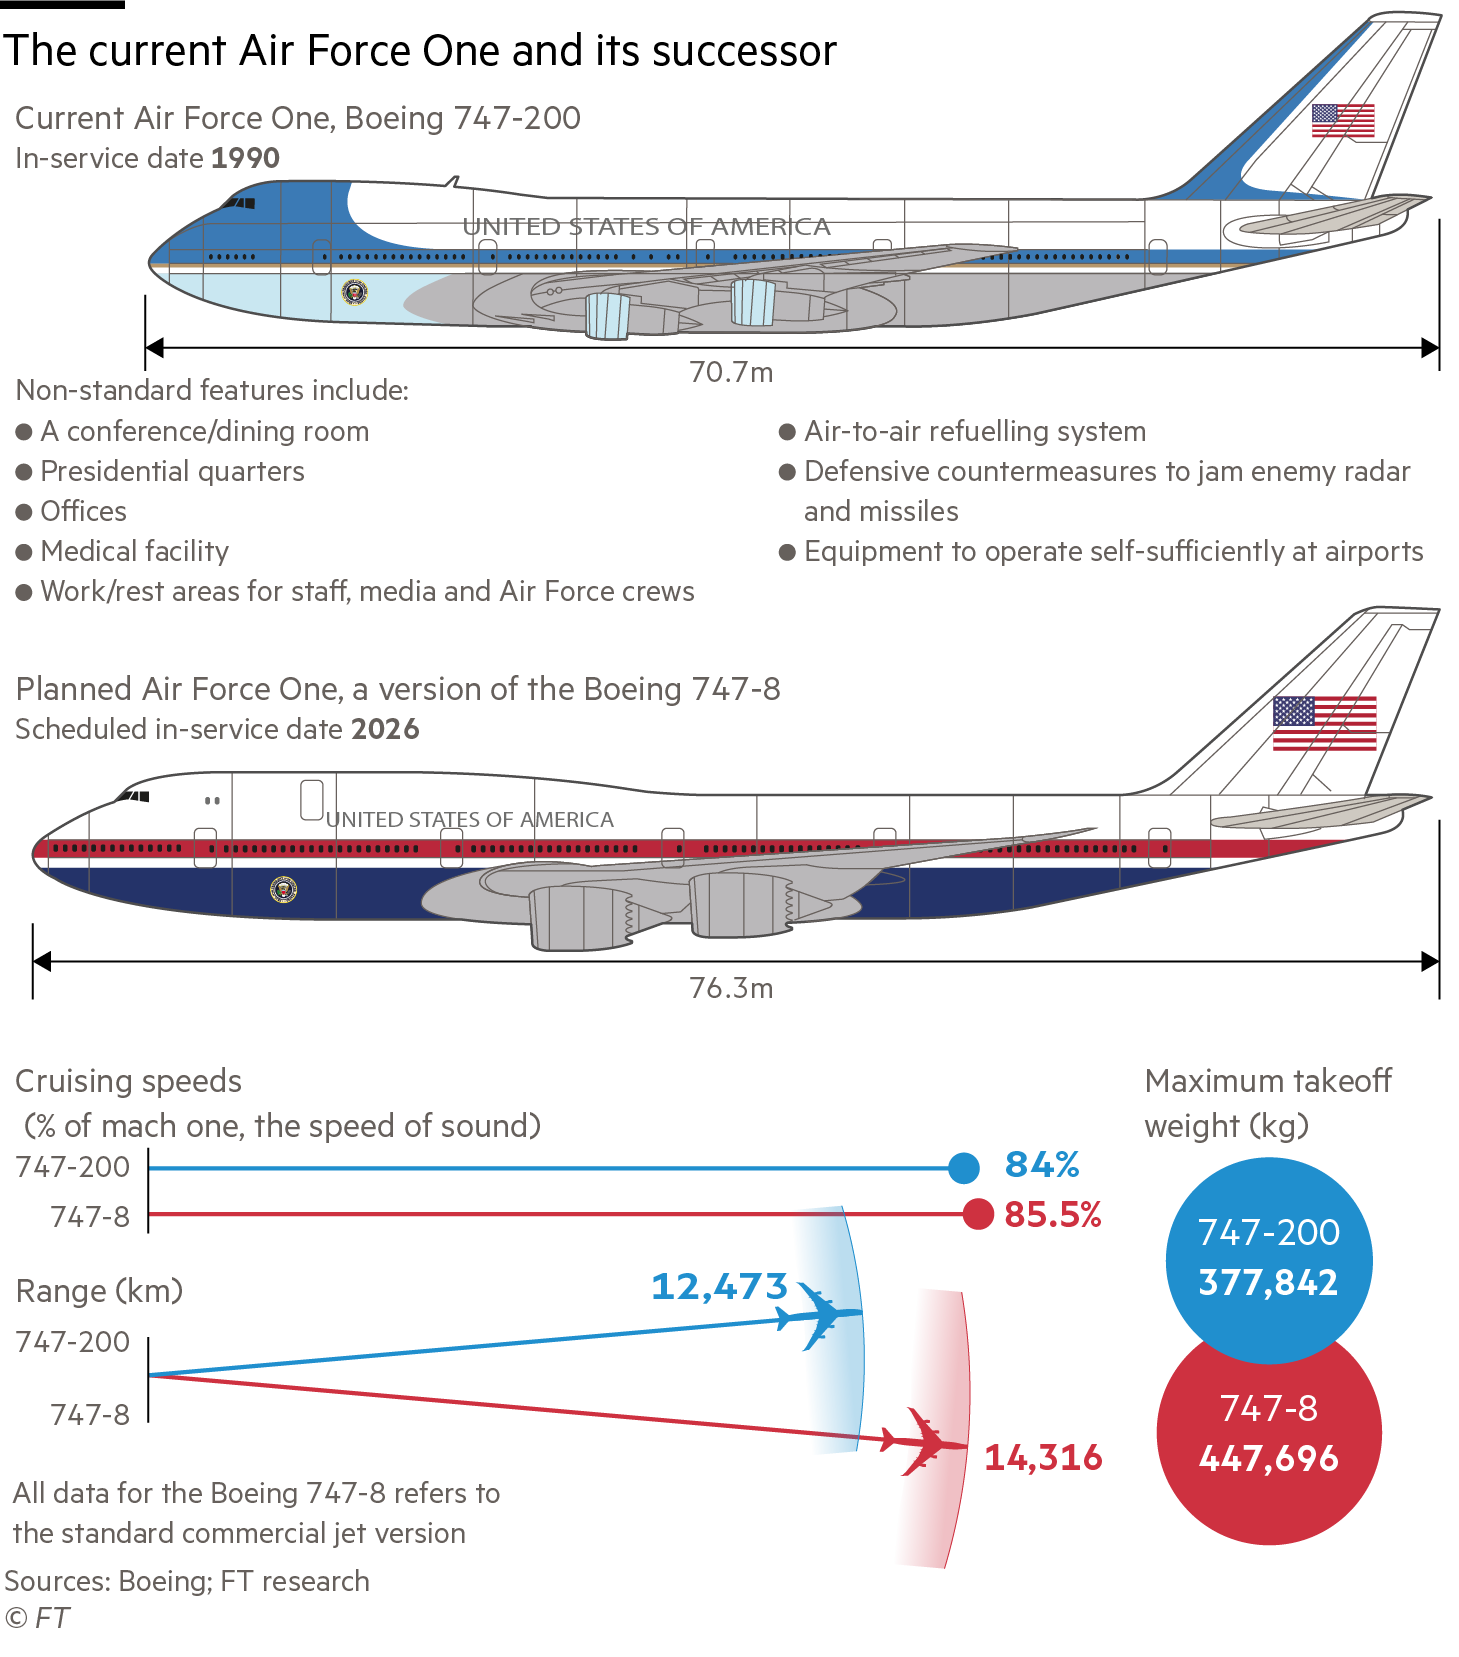 Information graphic comparing the current Air Force One aircraft with its successor